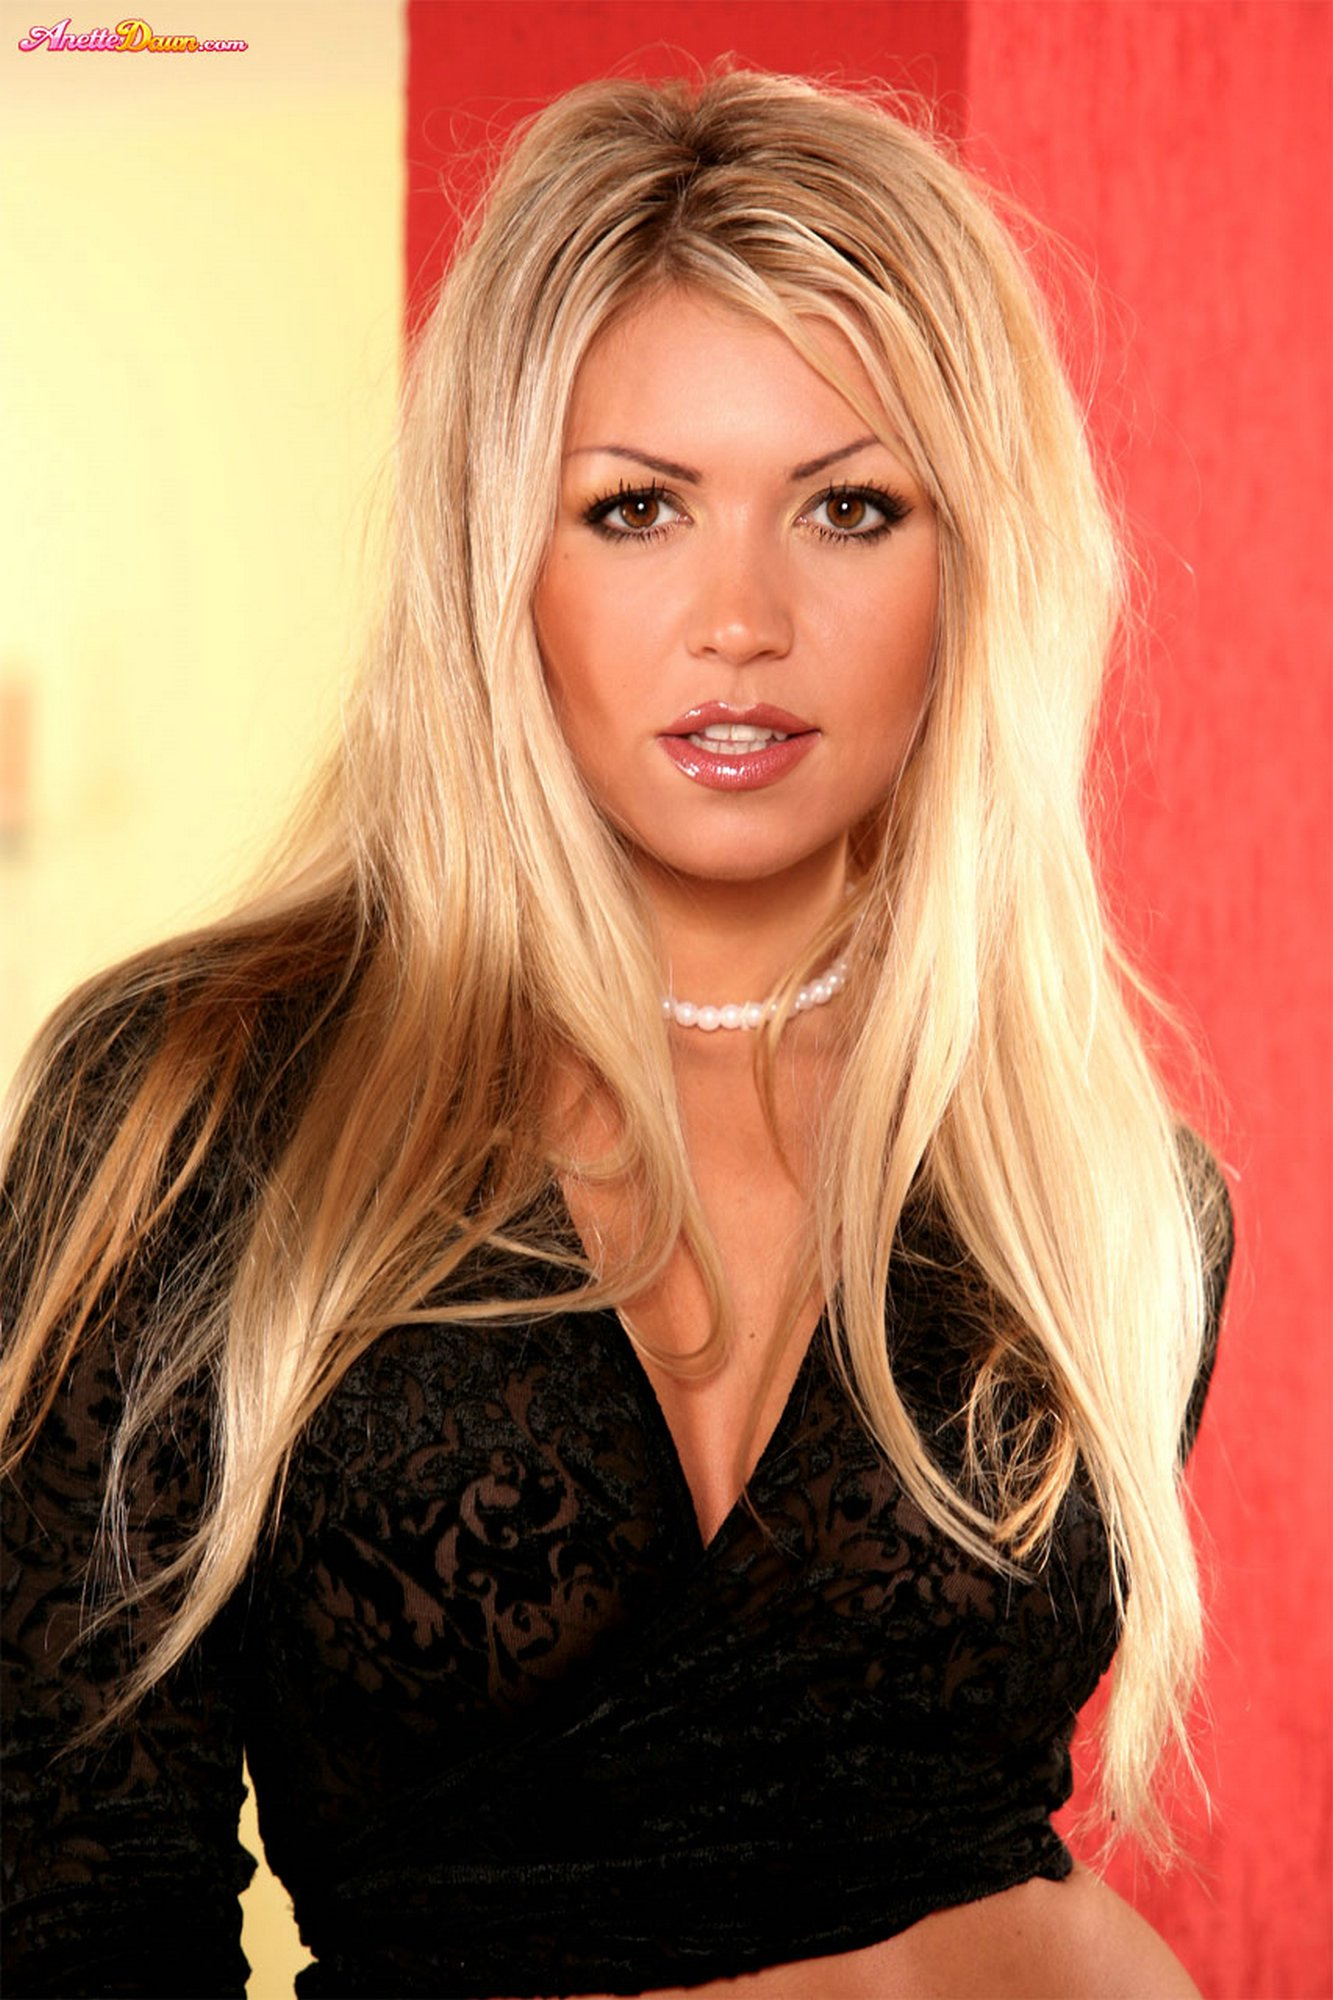 anette dawn sexilicious 001 (anettedawnsexilicious001.jpg